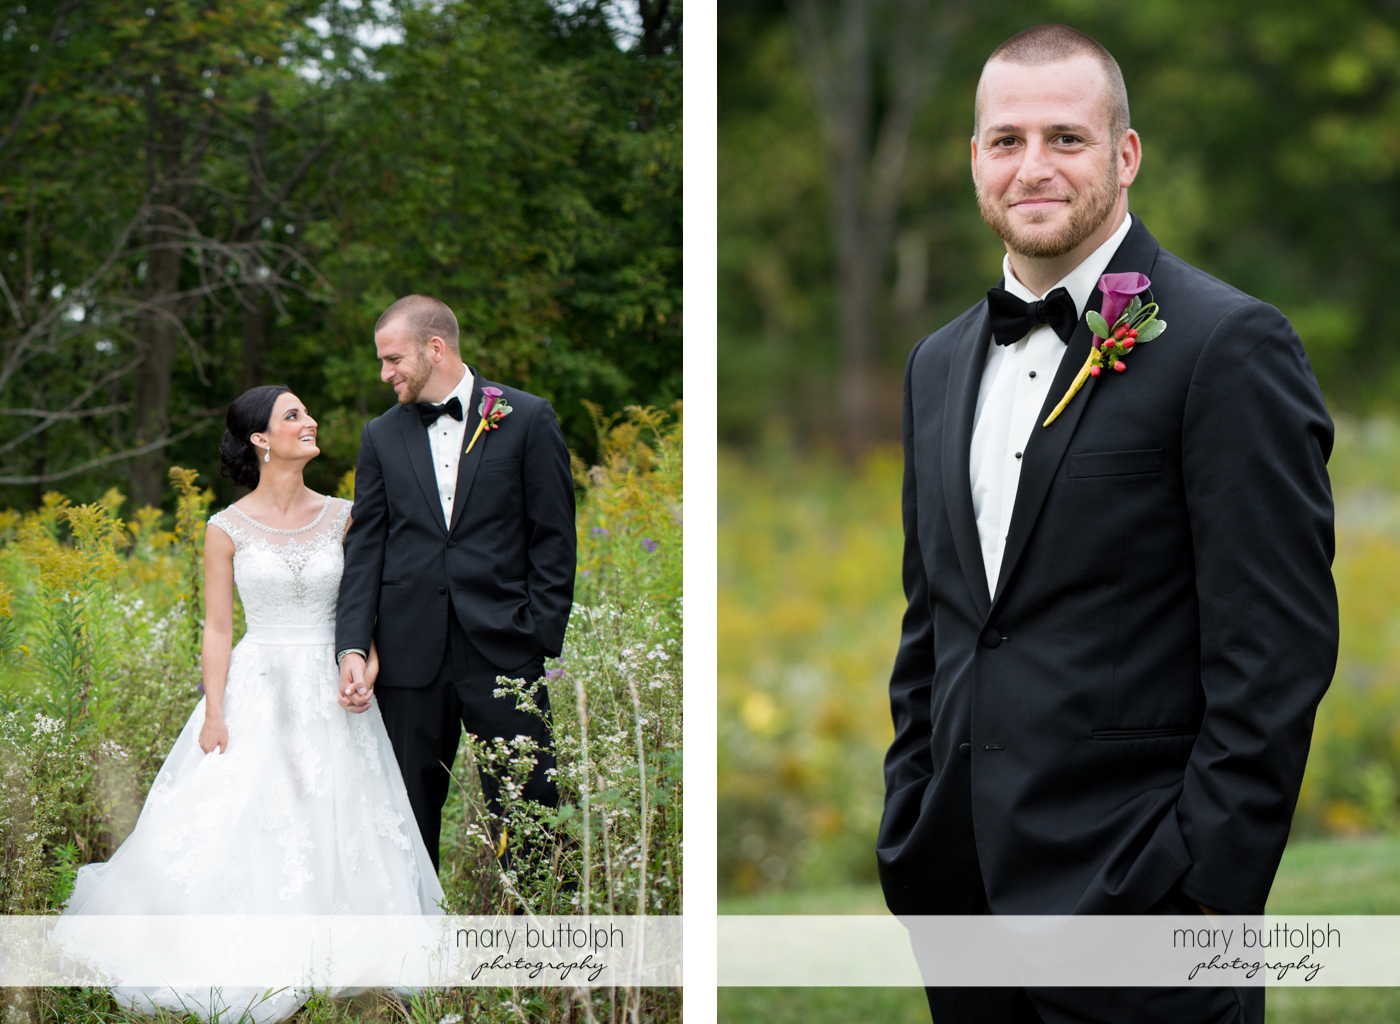 Couple pose in the garden while the groom goes solo at Anyela's Vineyards Wedding